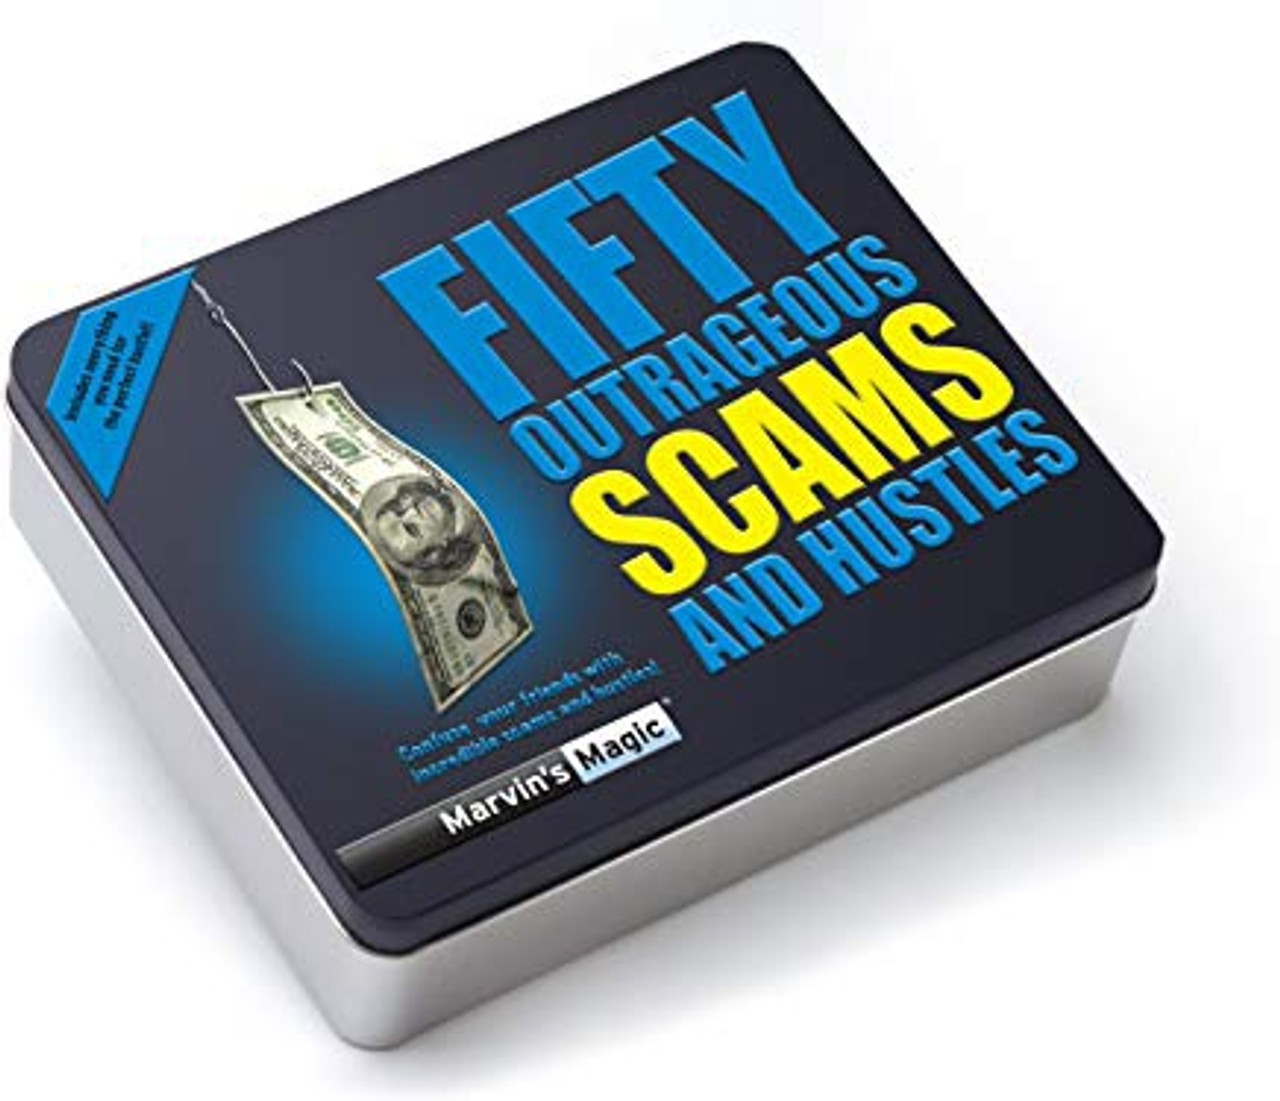 MARVIN'S MAGIC FIFTY OUTRAGEOUS SCAMS AND HUSTLES